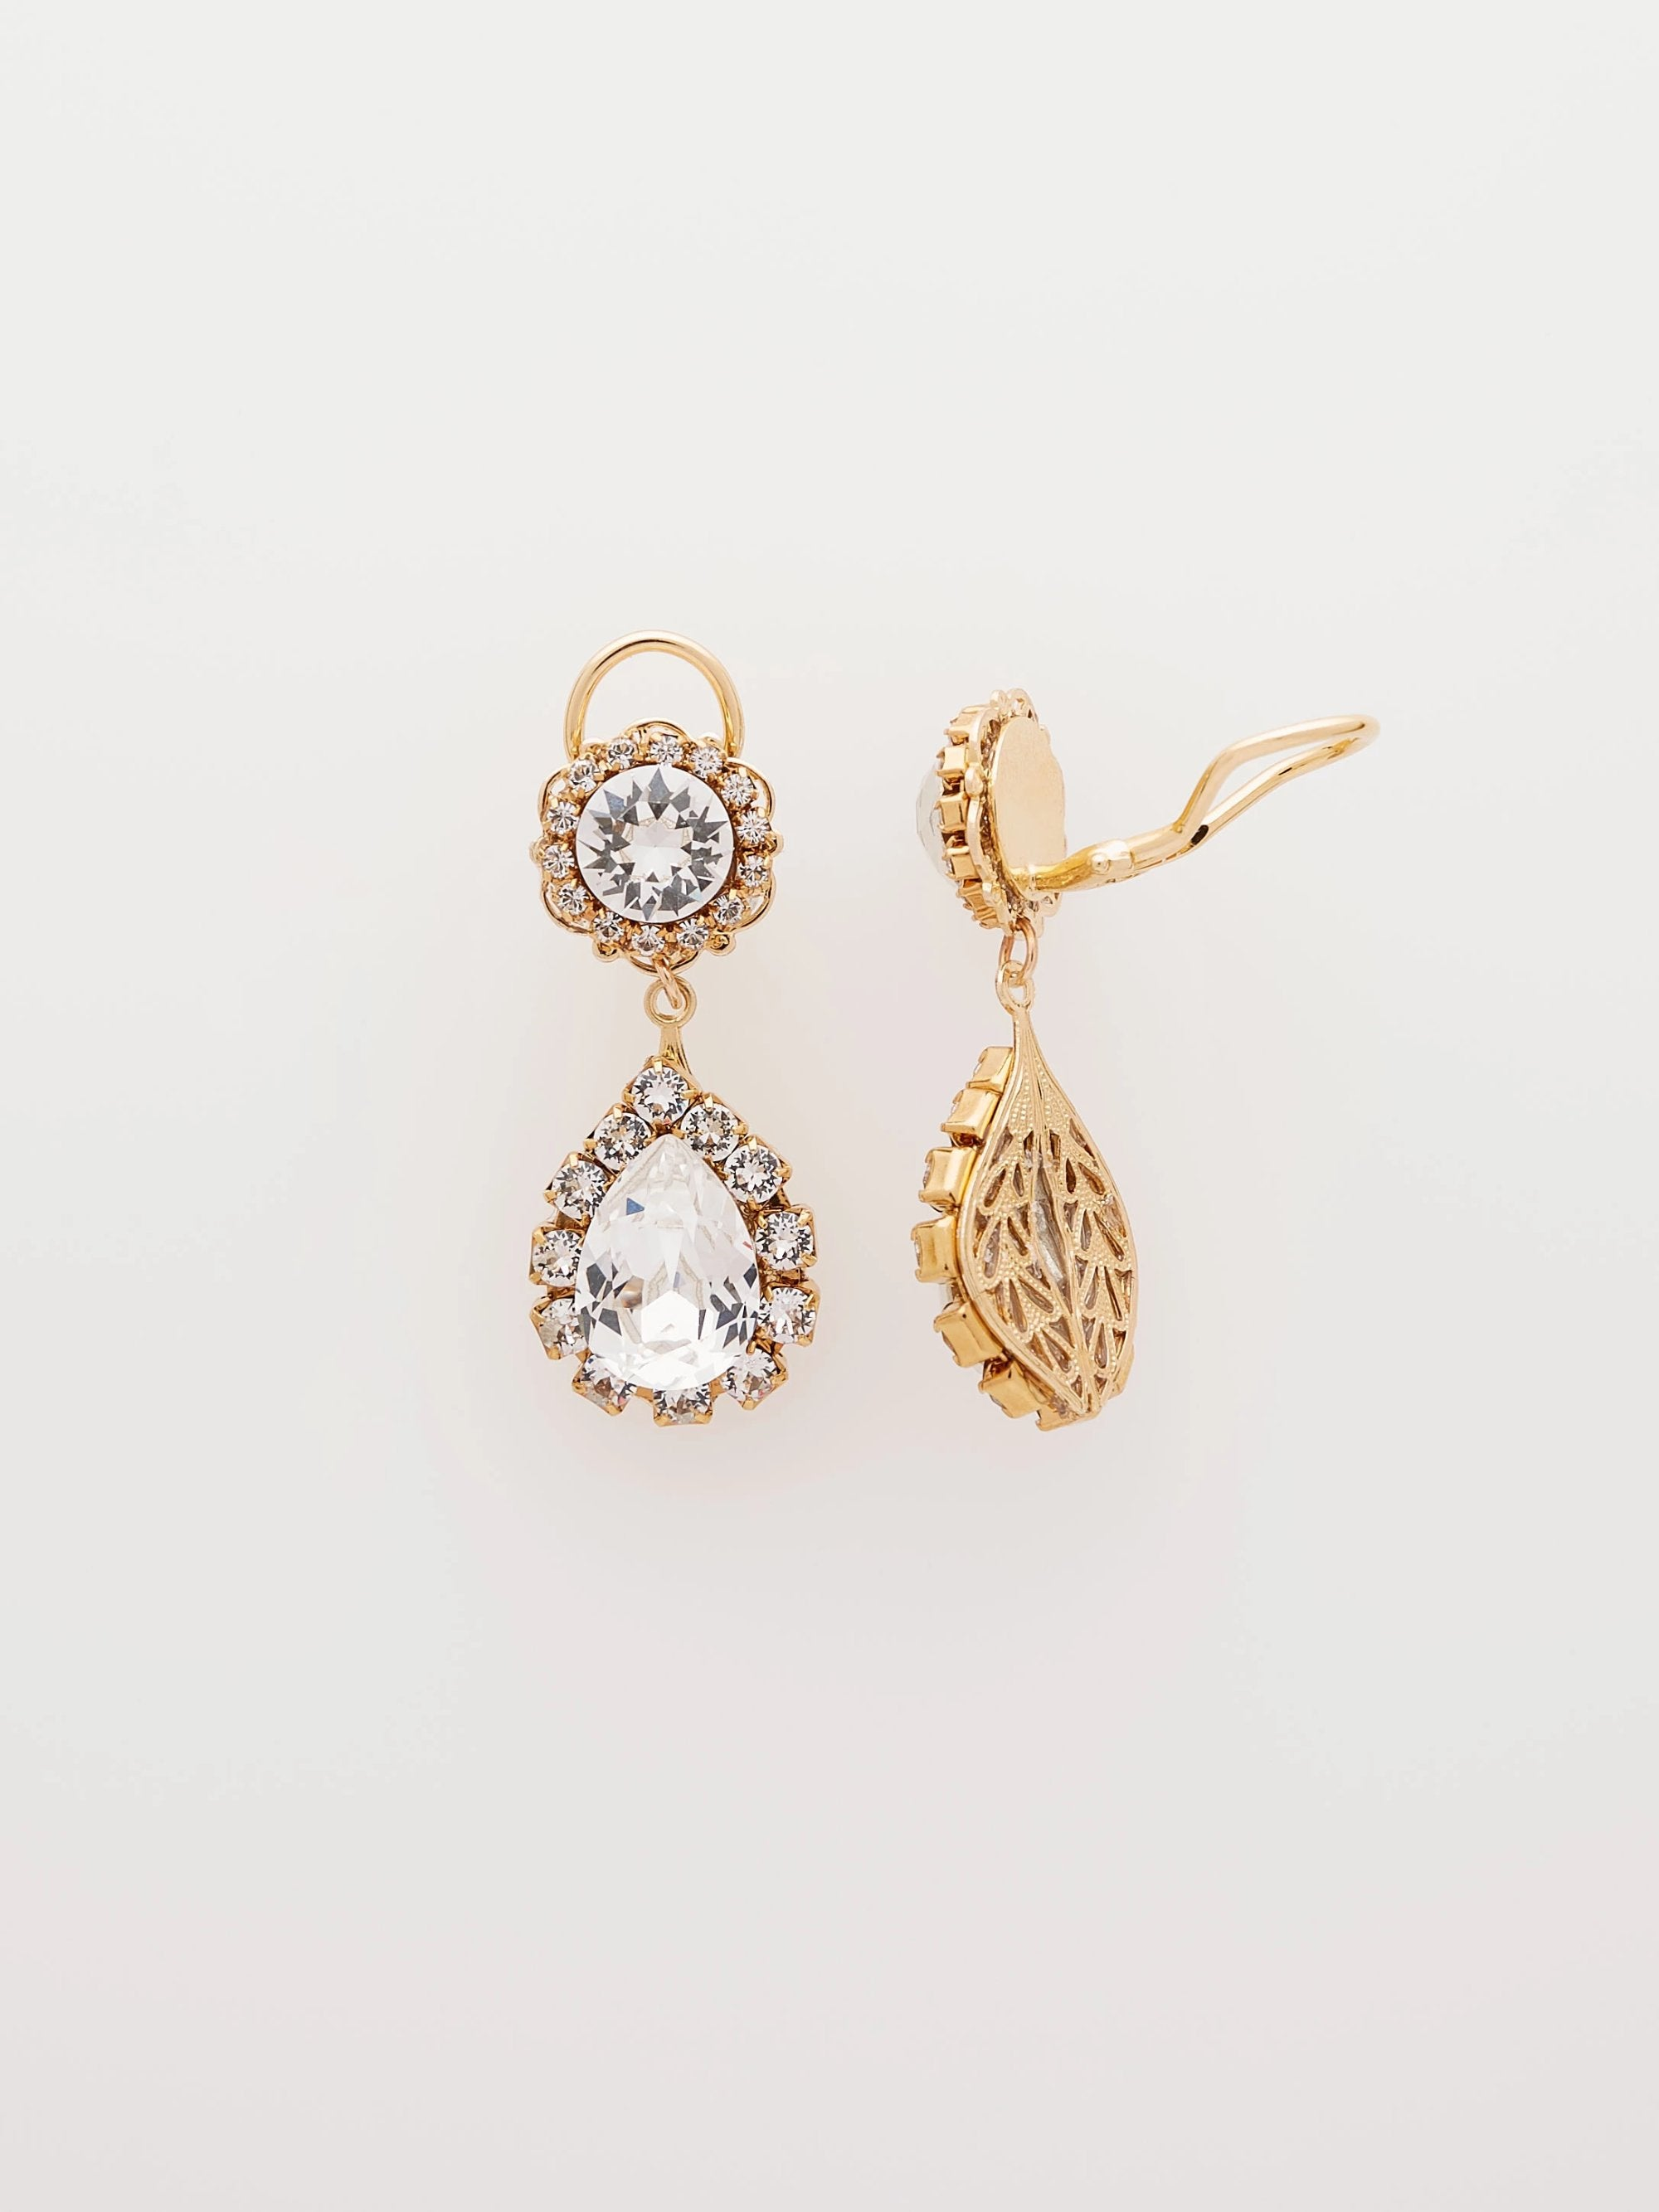 Gold double drop earrings with sparkling Swarovski crystals surrounded by crystal-set gold chain that dangle from gold clip-on earring backs. Made by Sara Gabriel.